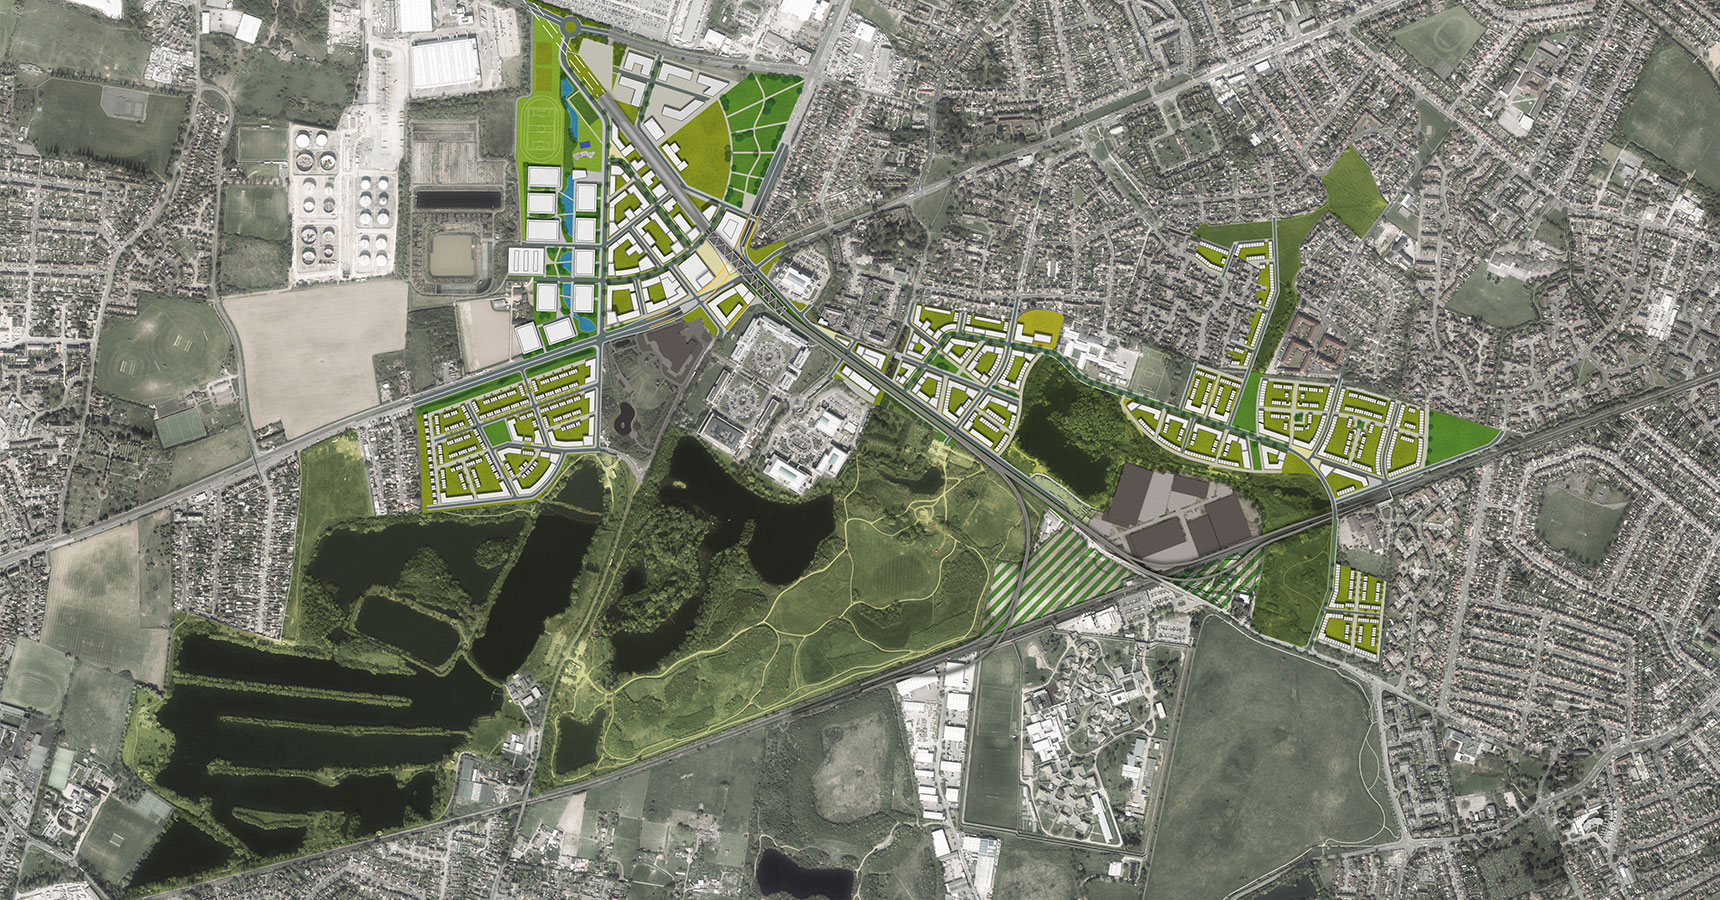 //uistudio.co.uk/wp-content/uploads/2015/11/4094_West-of-Borough_Masterplan_1720x900.jpg